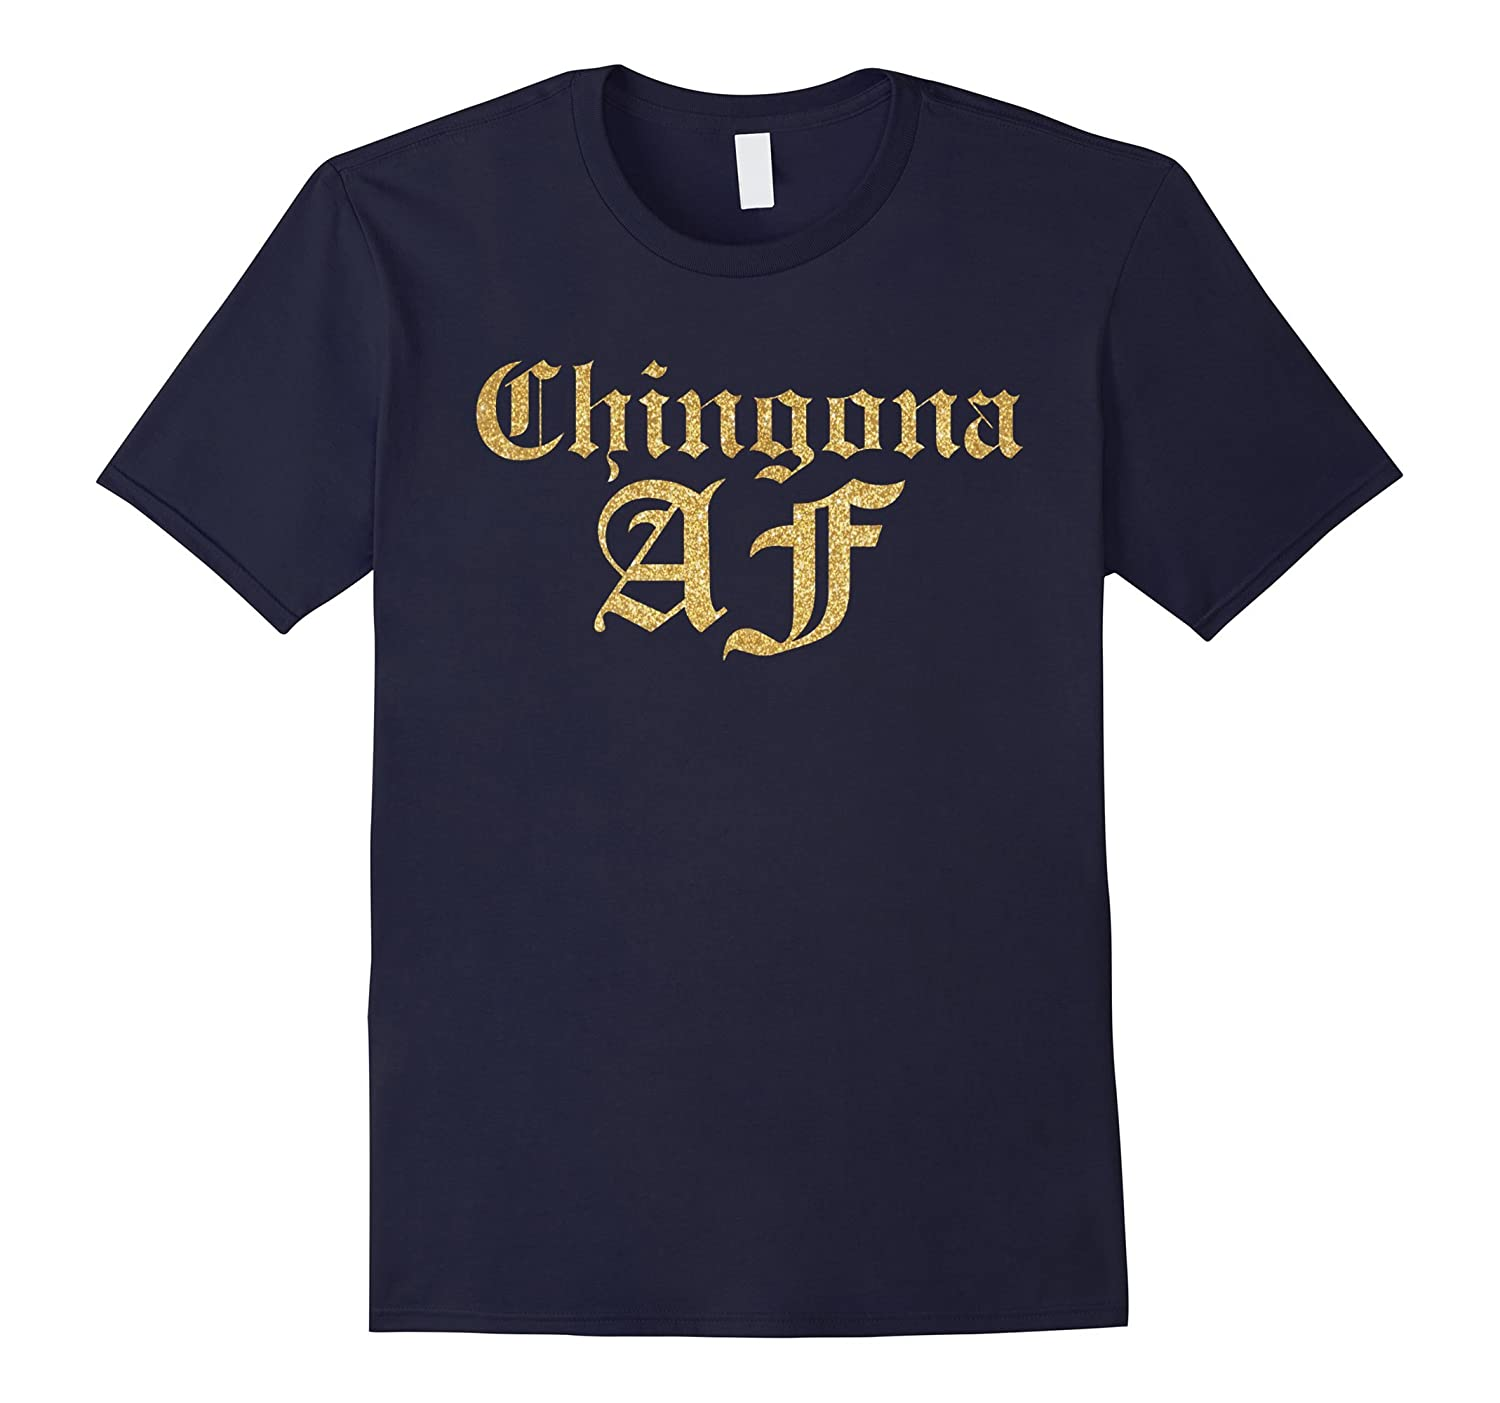 Chingona AF T-Shirt Gold Foil Effect-Vaci